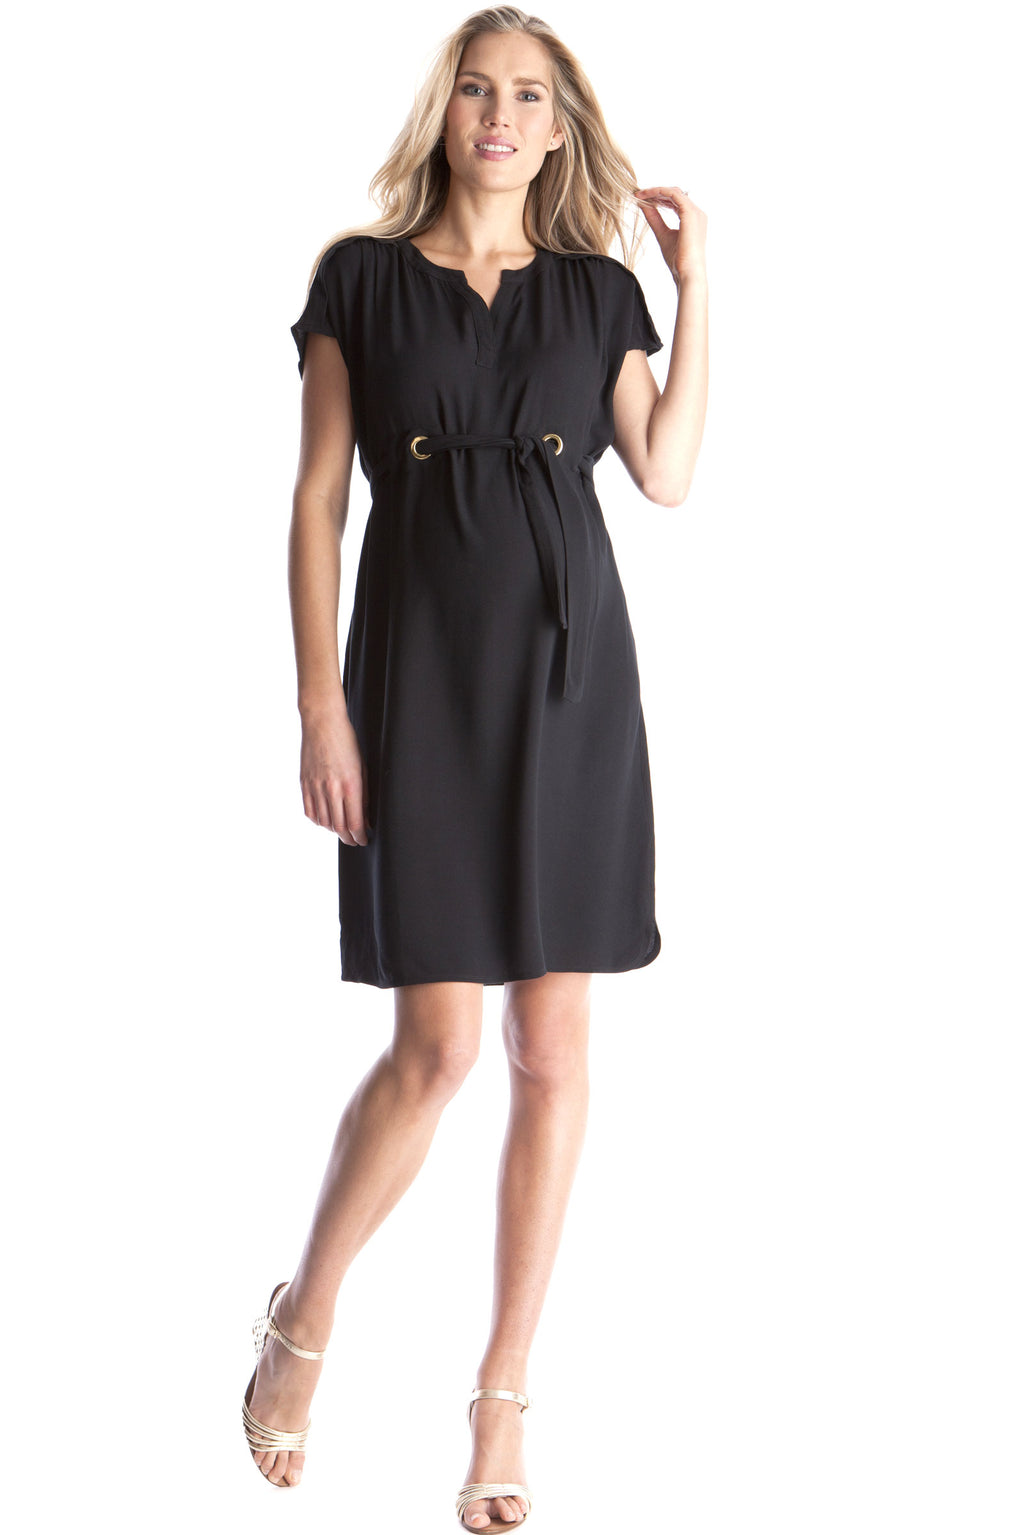 Seraphine Camden Woven Maternity Dress in Caviar - Seven Women Maternity